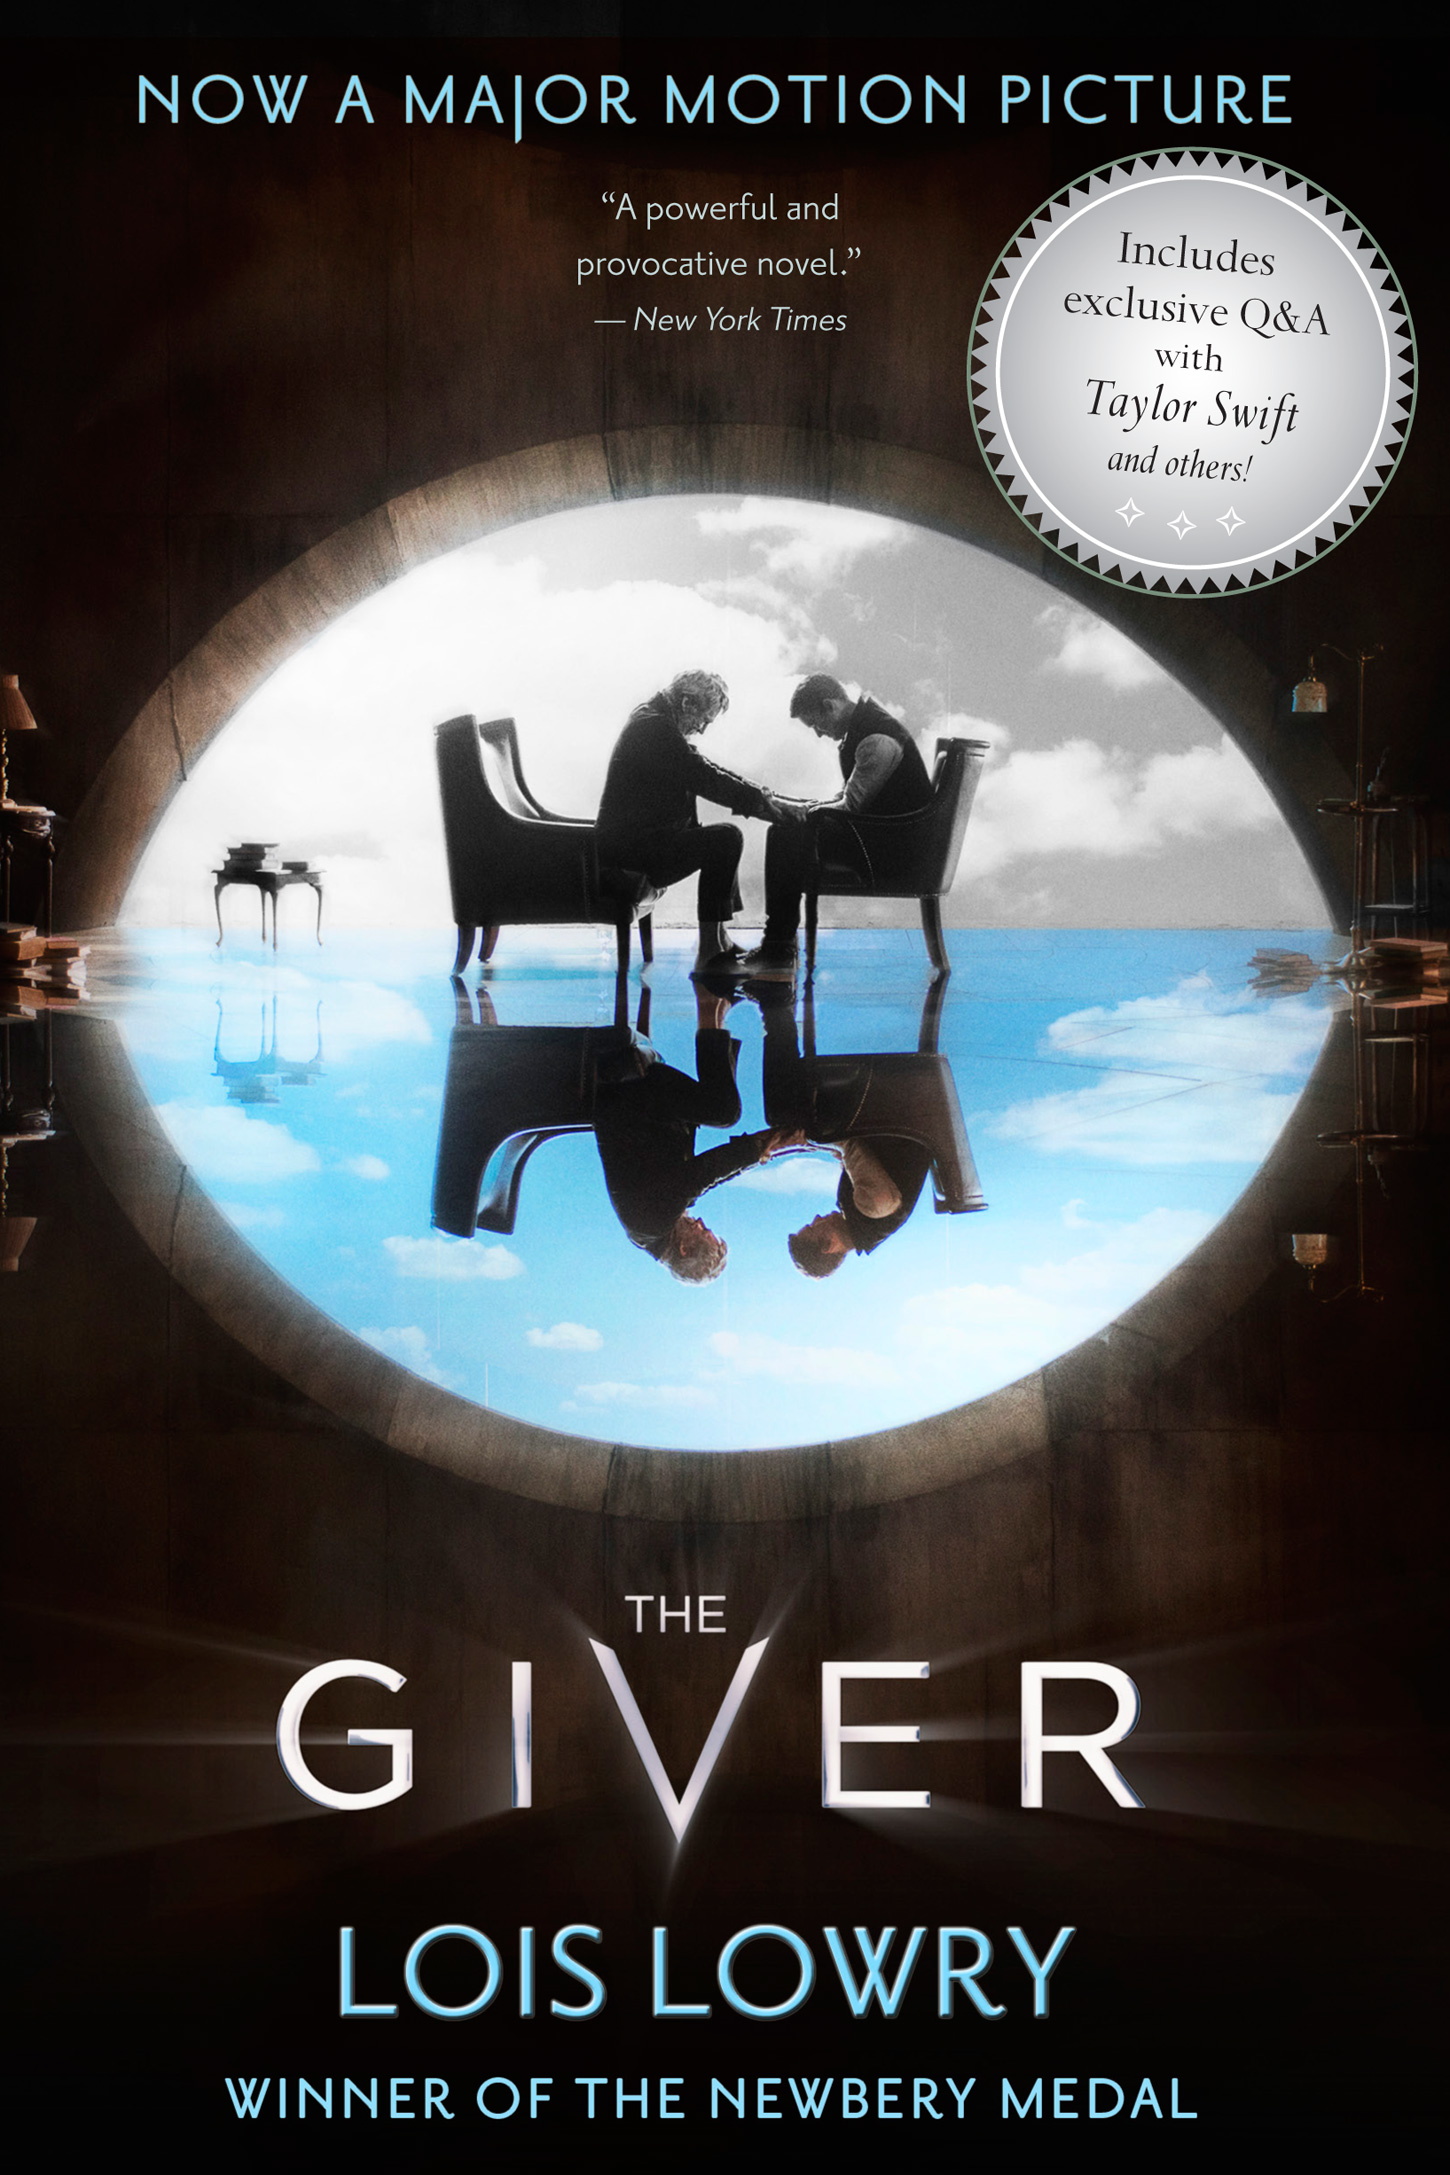 The Giver Movie Tie-In Edition-9780544340688